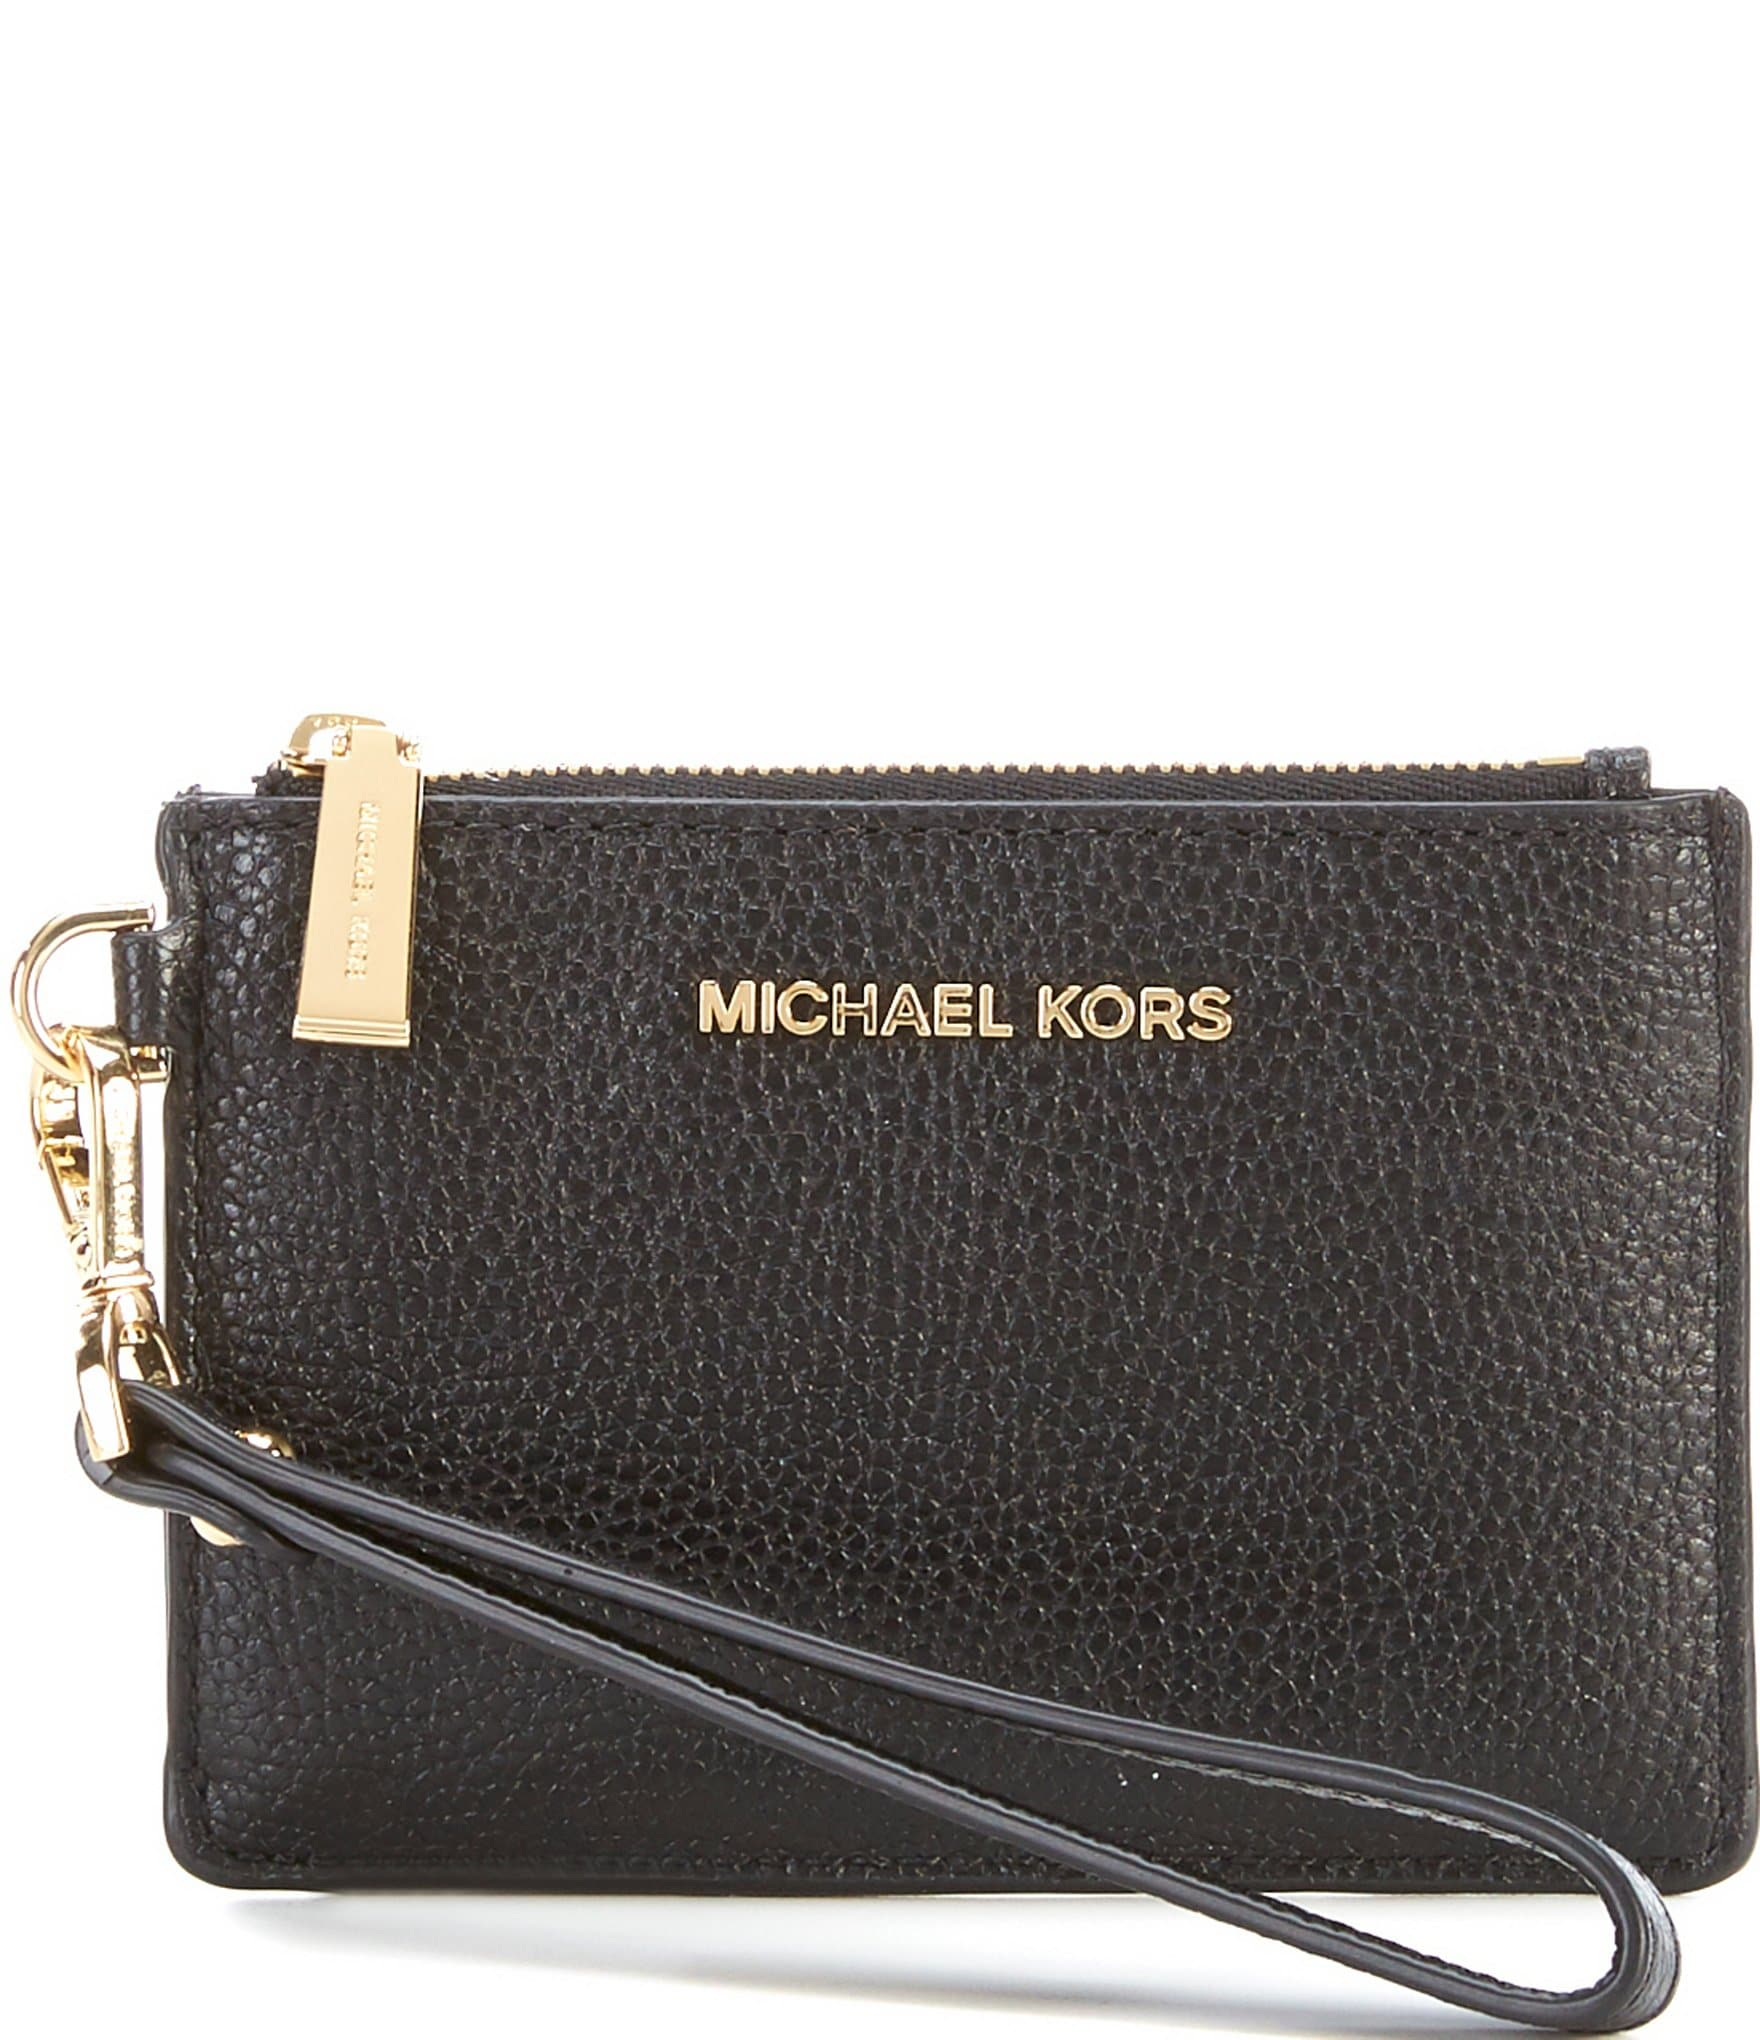 12c8a14f9048 michael kors wristlet brown sale > OFF62% Discounted